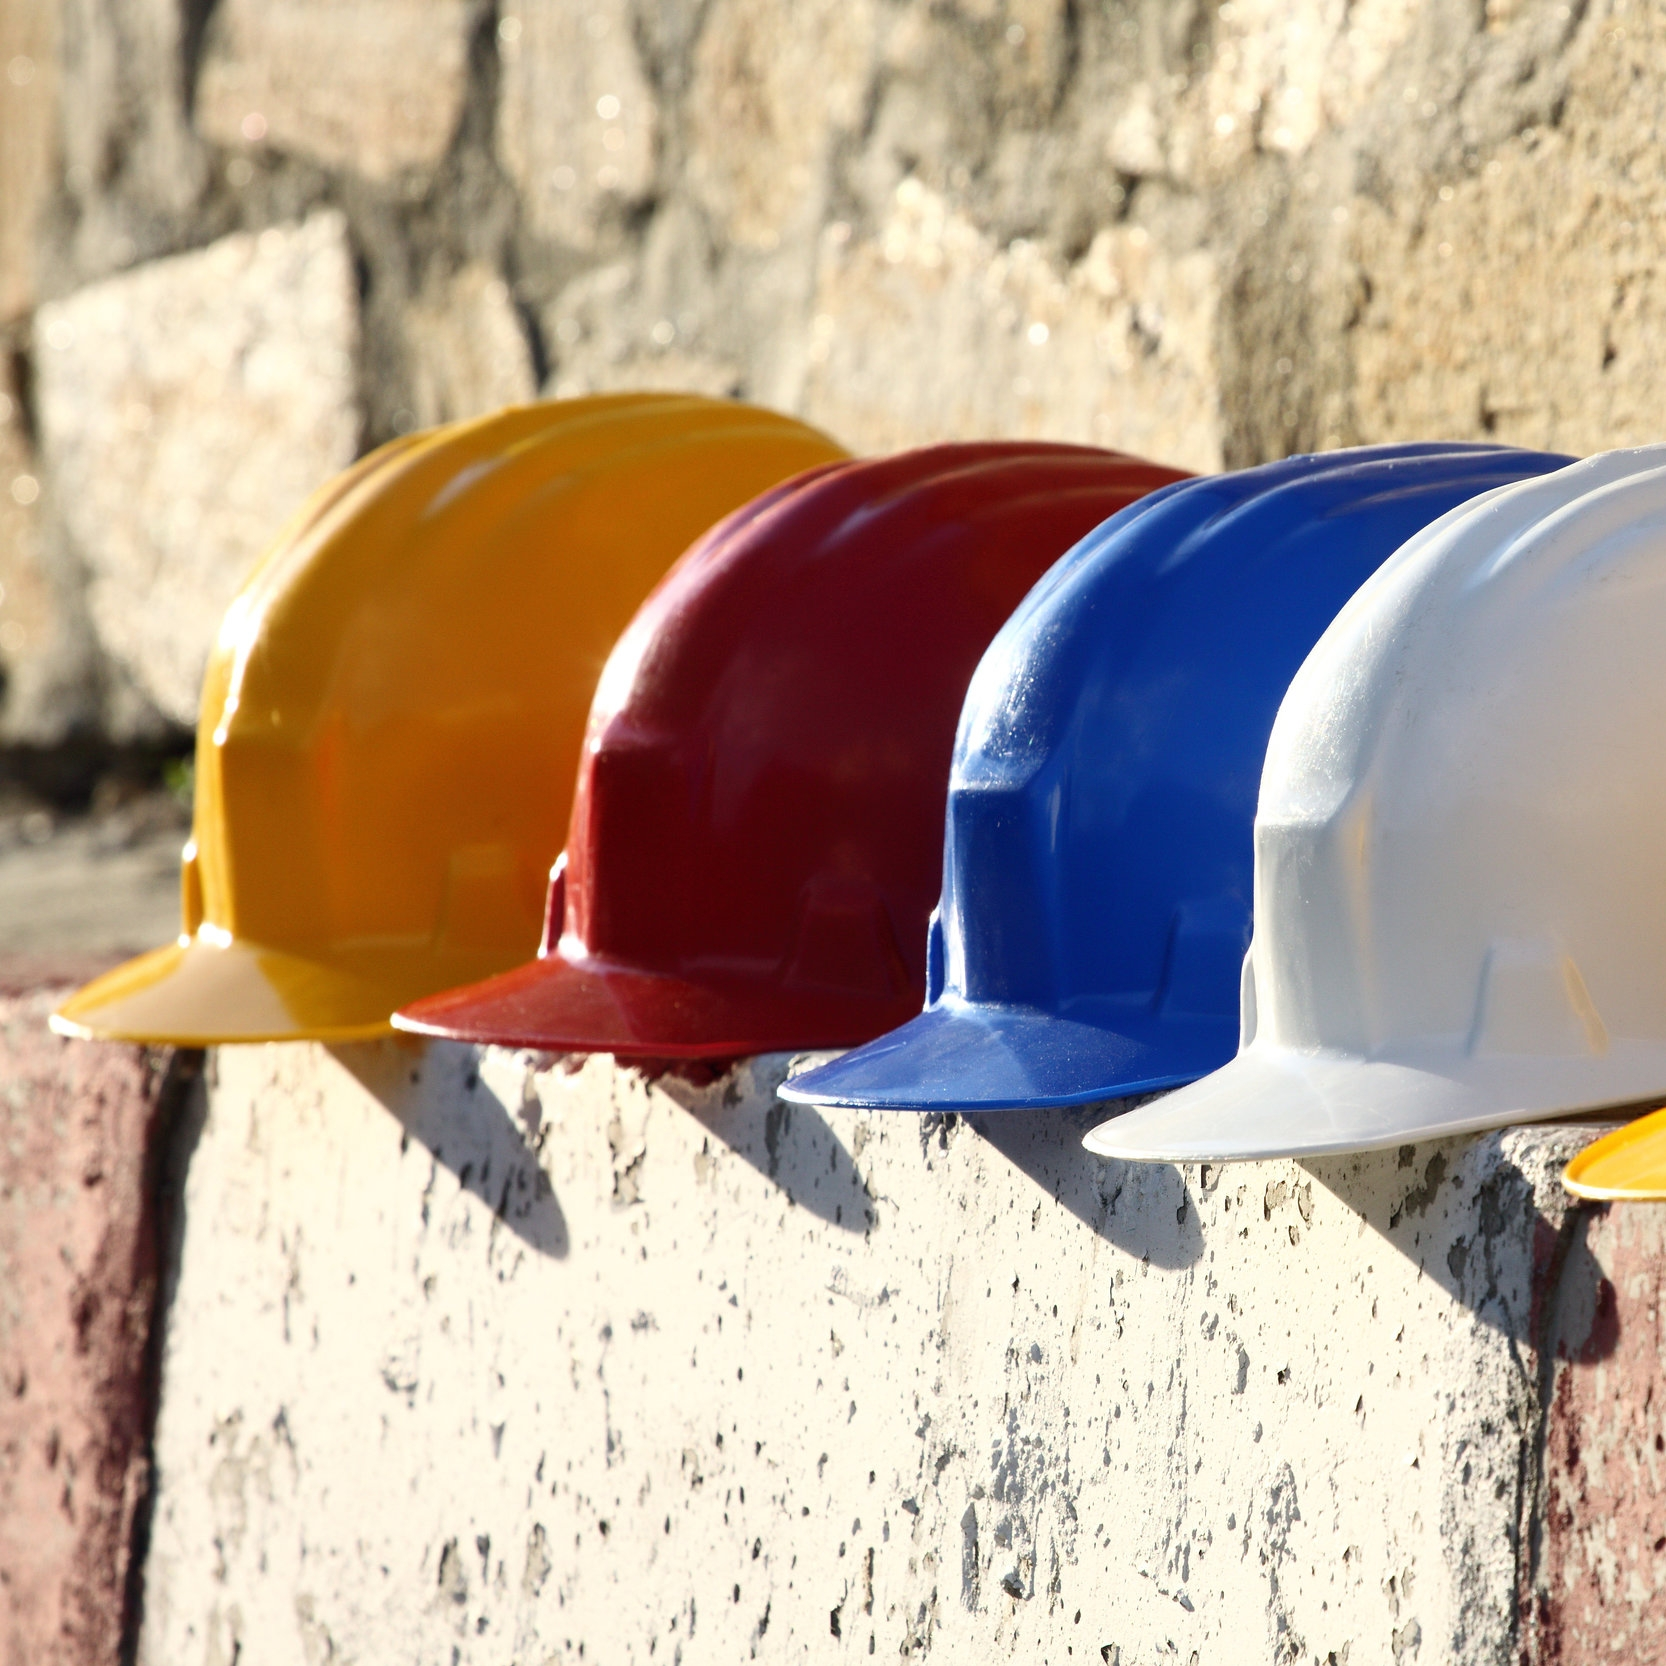 Construction Hard Hats Lined Up